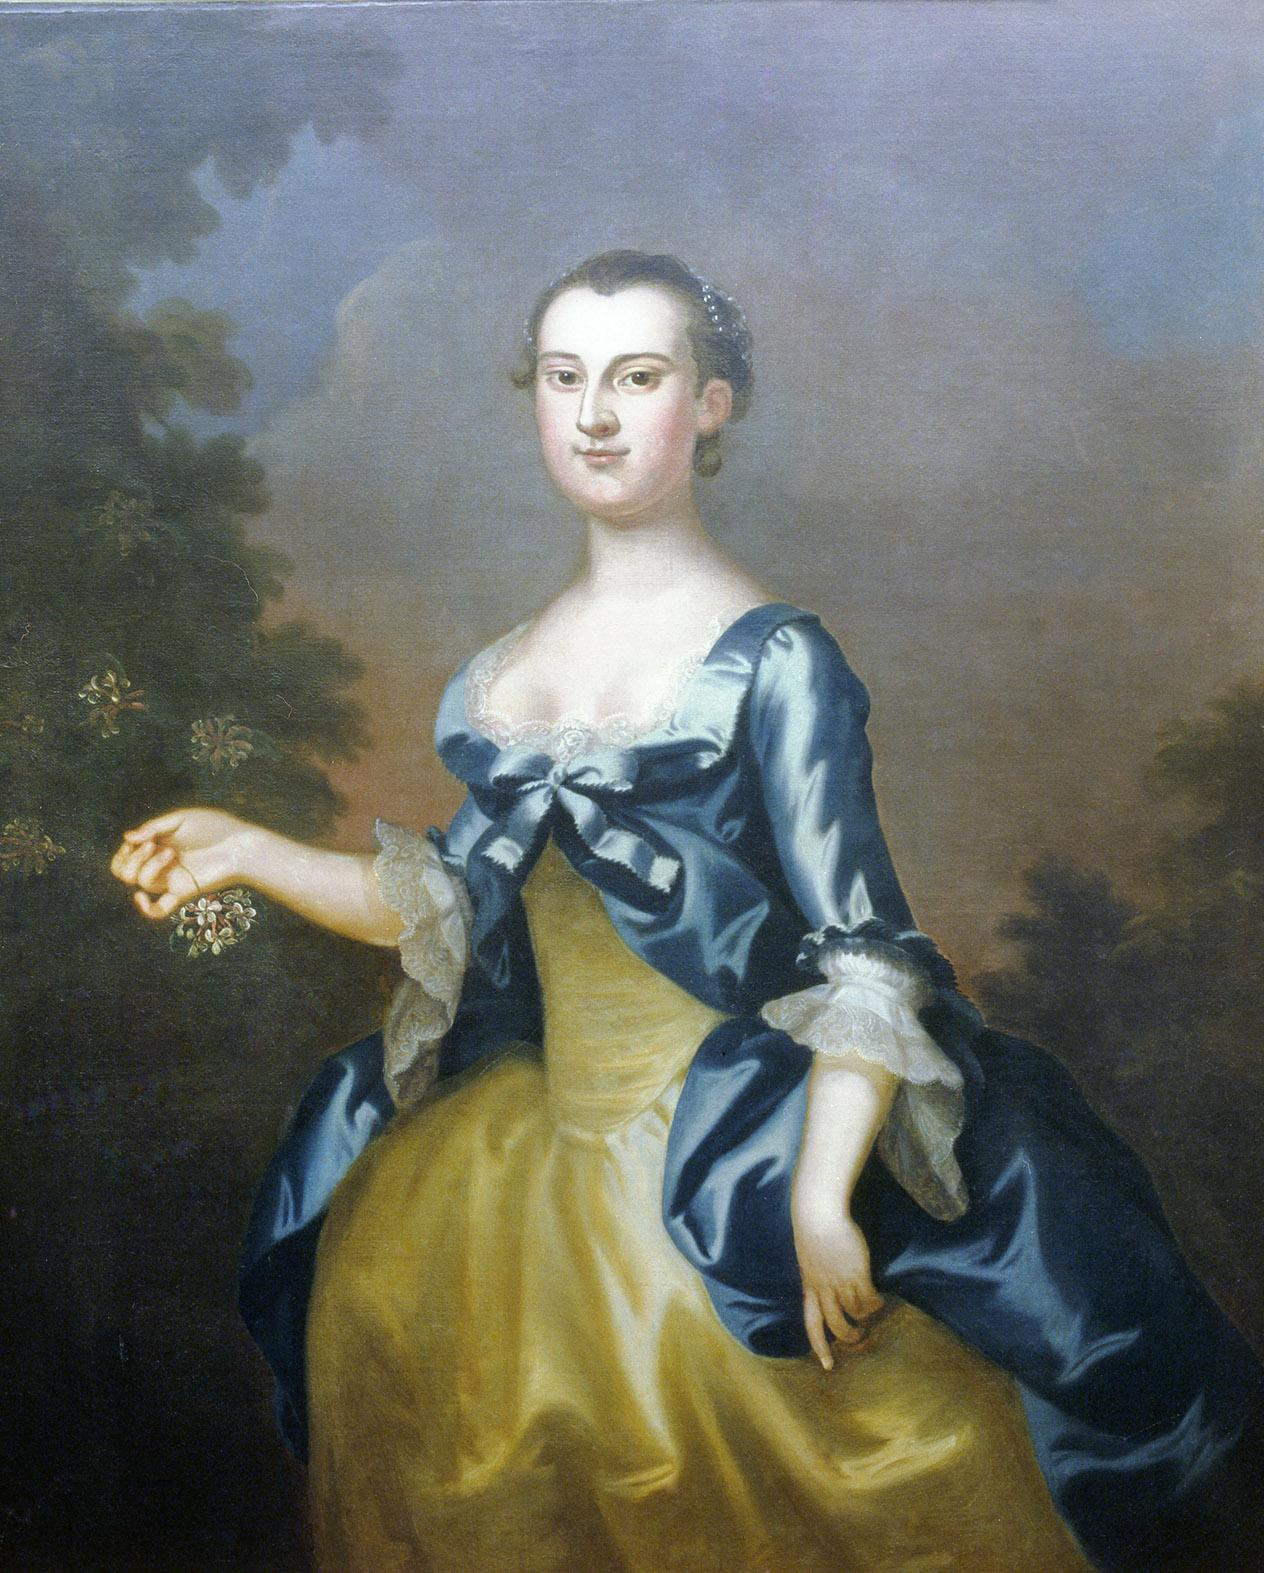 Martha Custis in 1757. U1918.1.1 Painting, Martha Dandridge Custis, John Wollaston, oil on canvas, 1757. Washington-Custis-Lee Collection, Washington and Lee University, Lexington, VA.